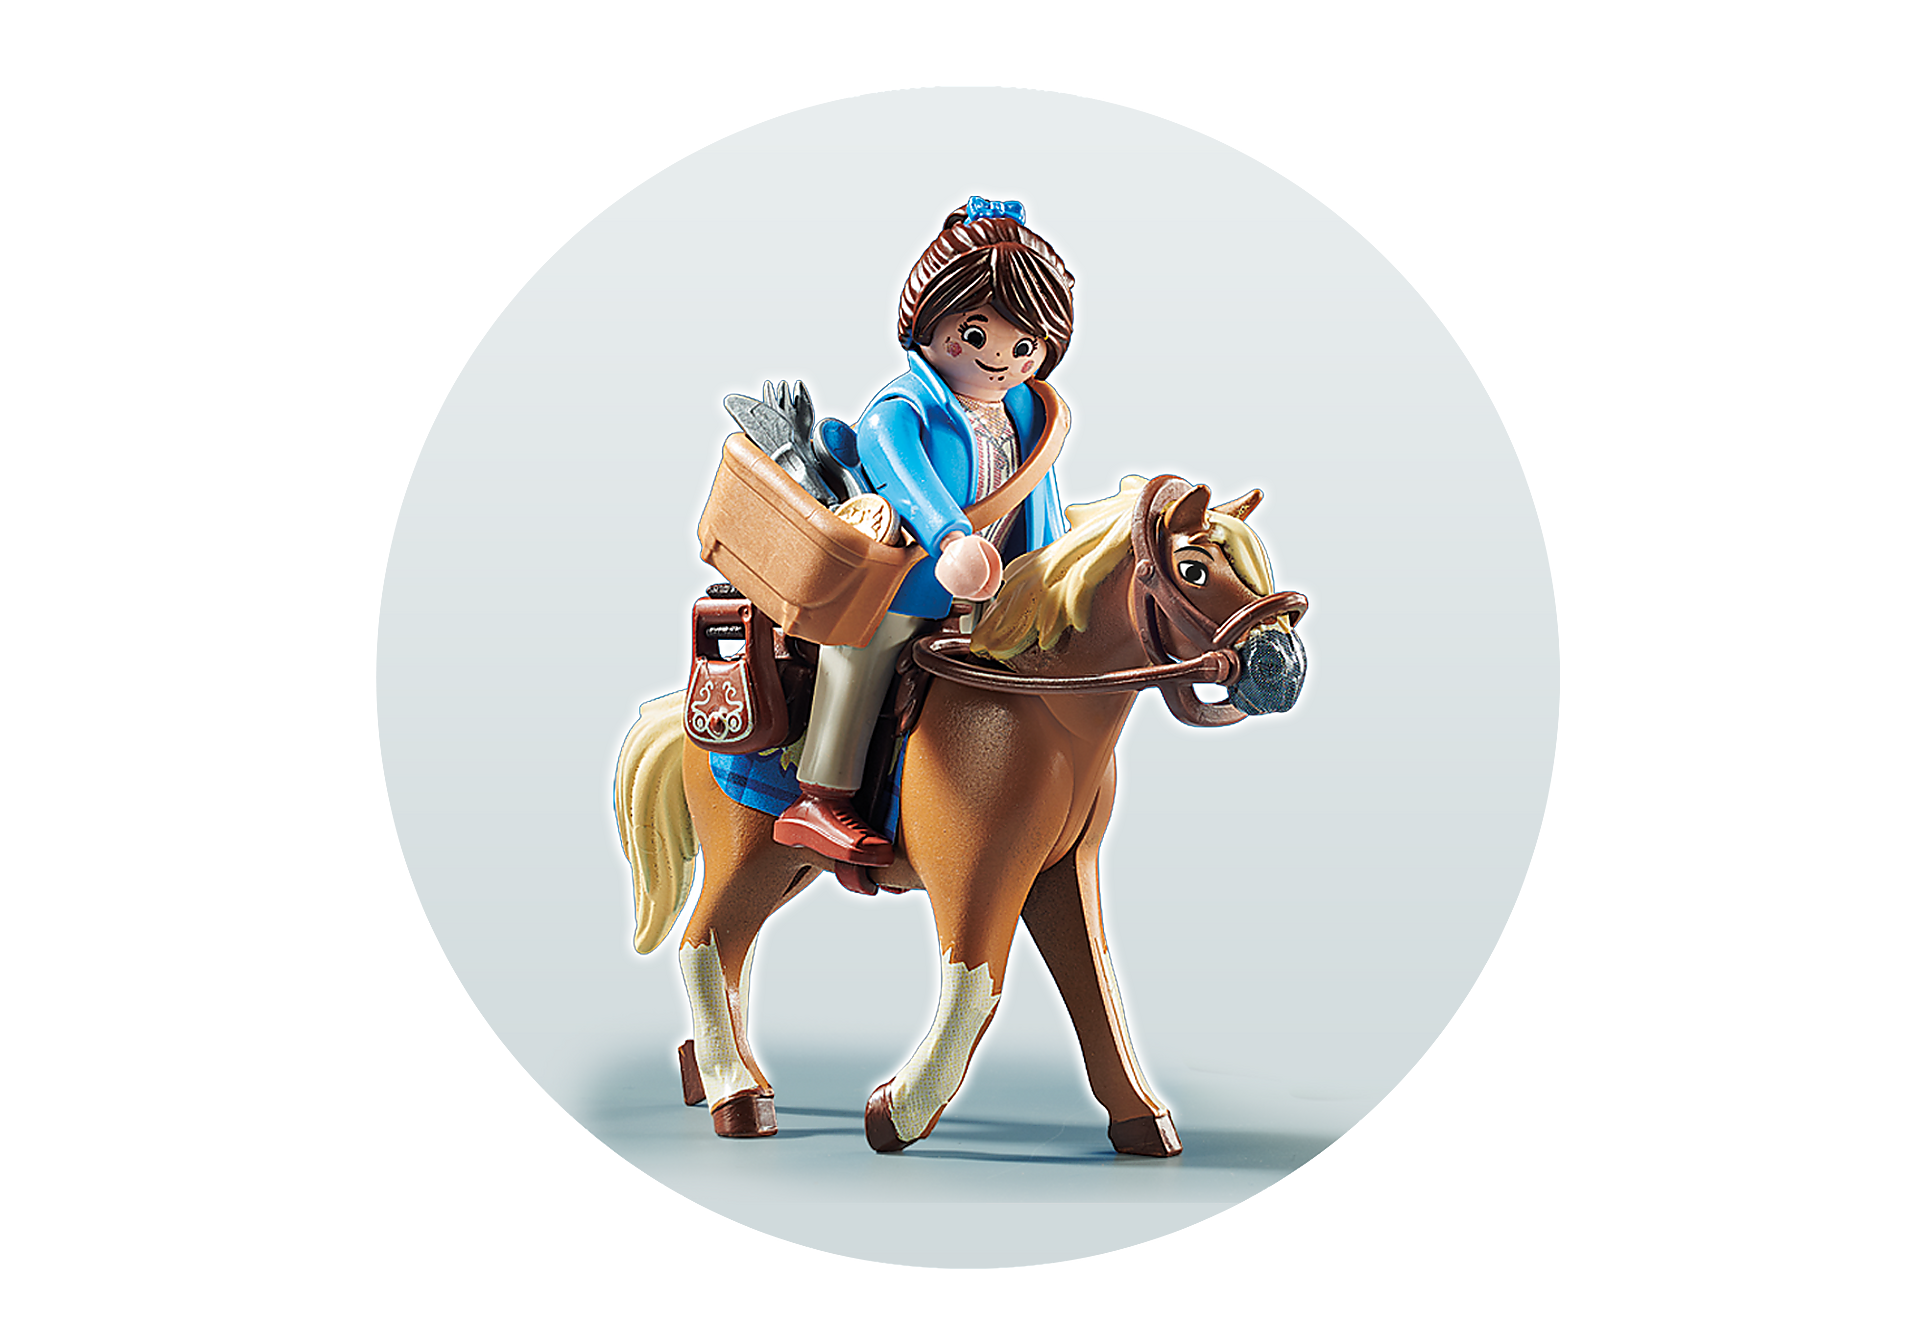 http://media.playmobil.com/i/playmobil/70072_product_extra1/PLAYMOBIL: THE MOVIE Marla com Cavalo